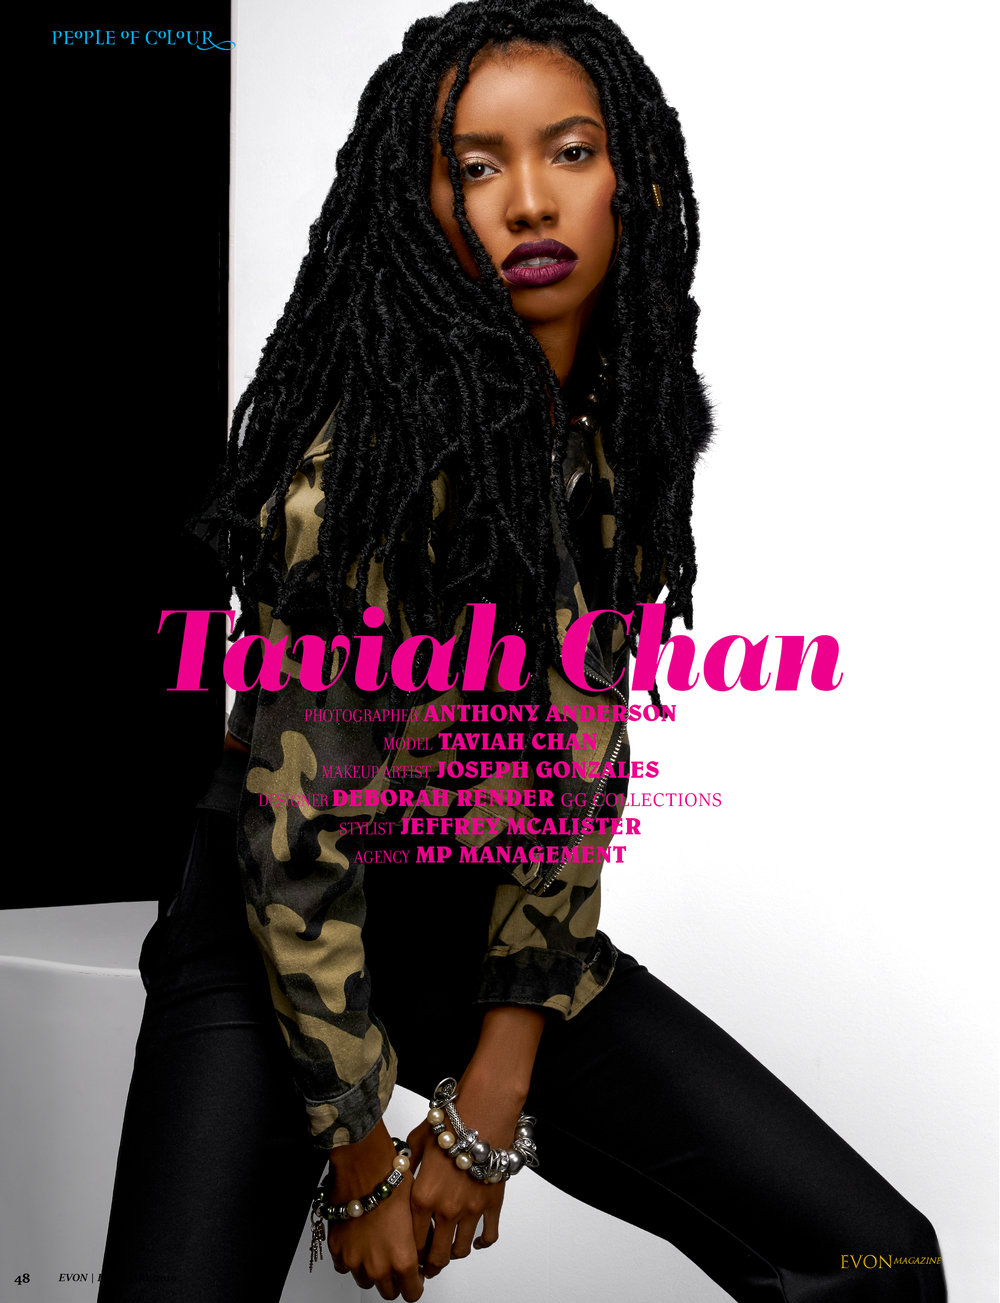 EVON PEOPLE OF COLOUR ISSUE48.jpg